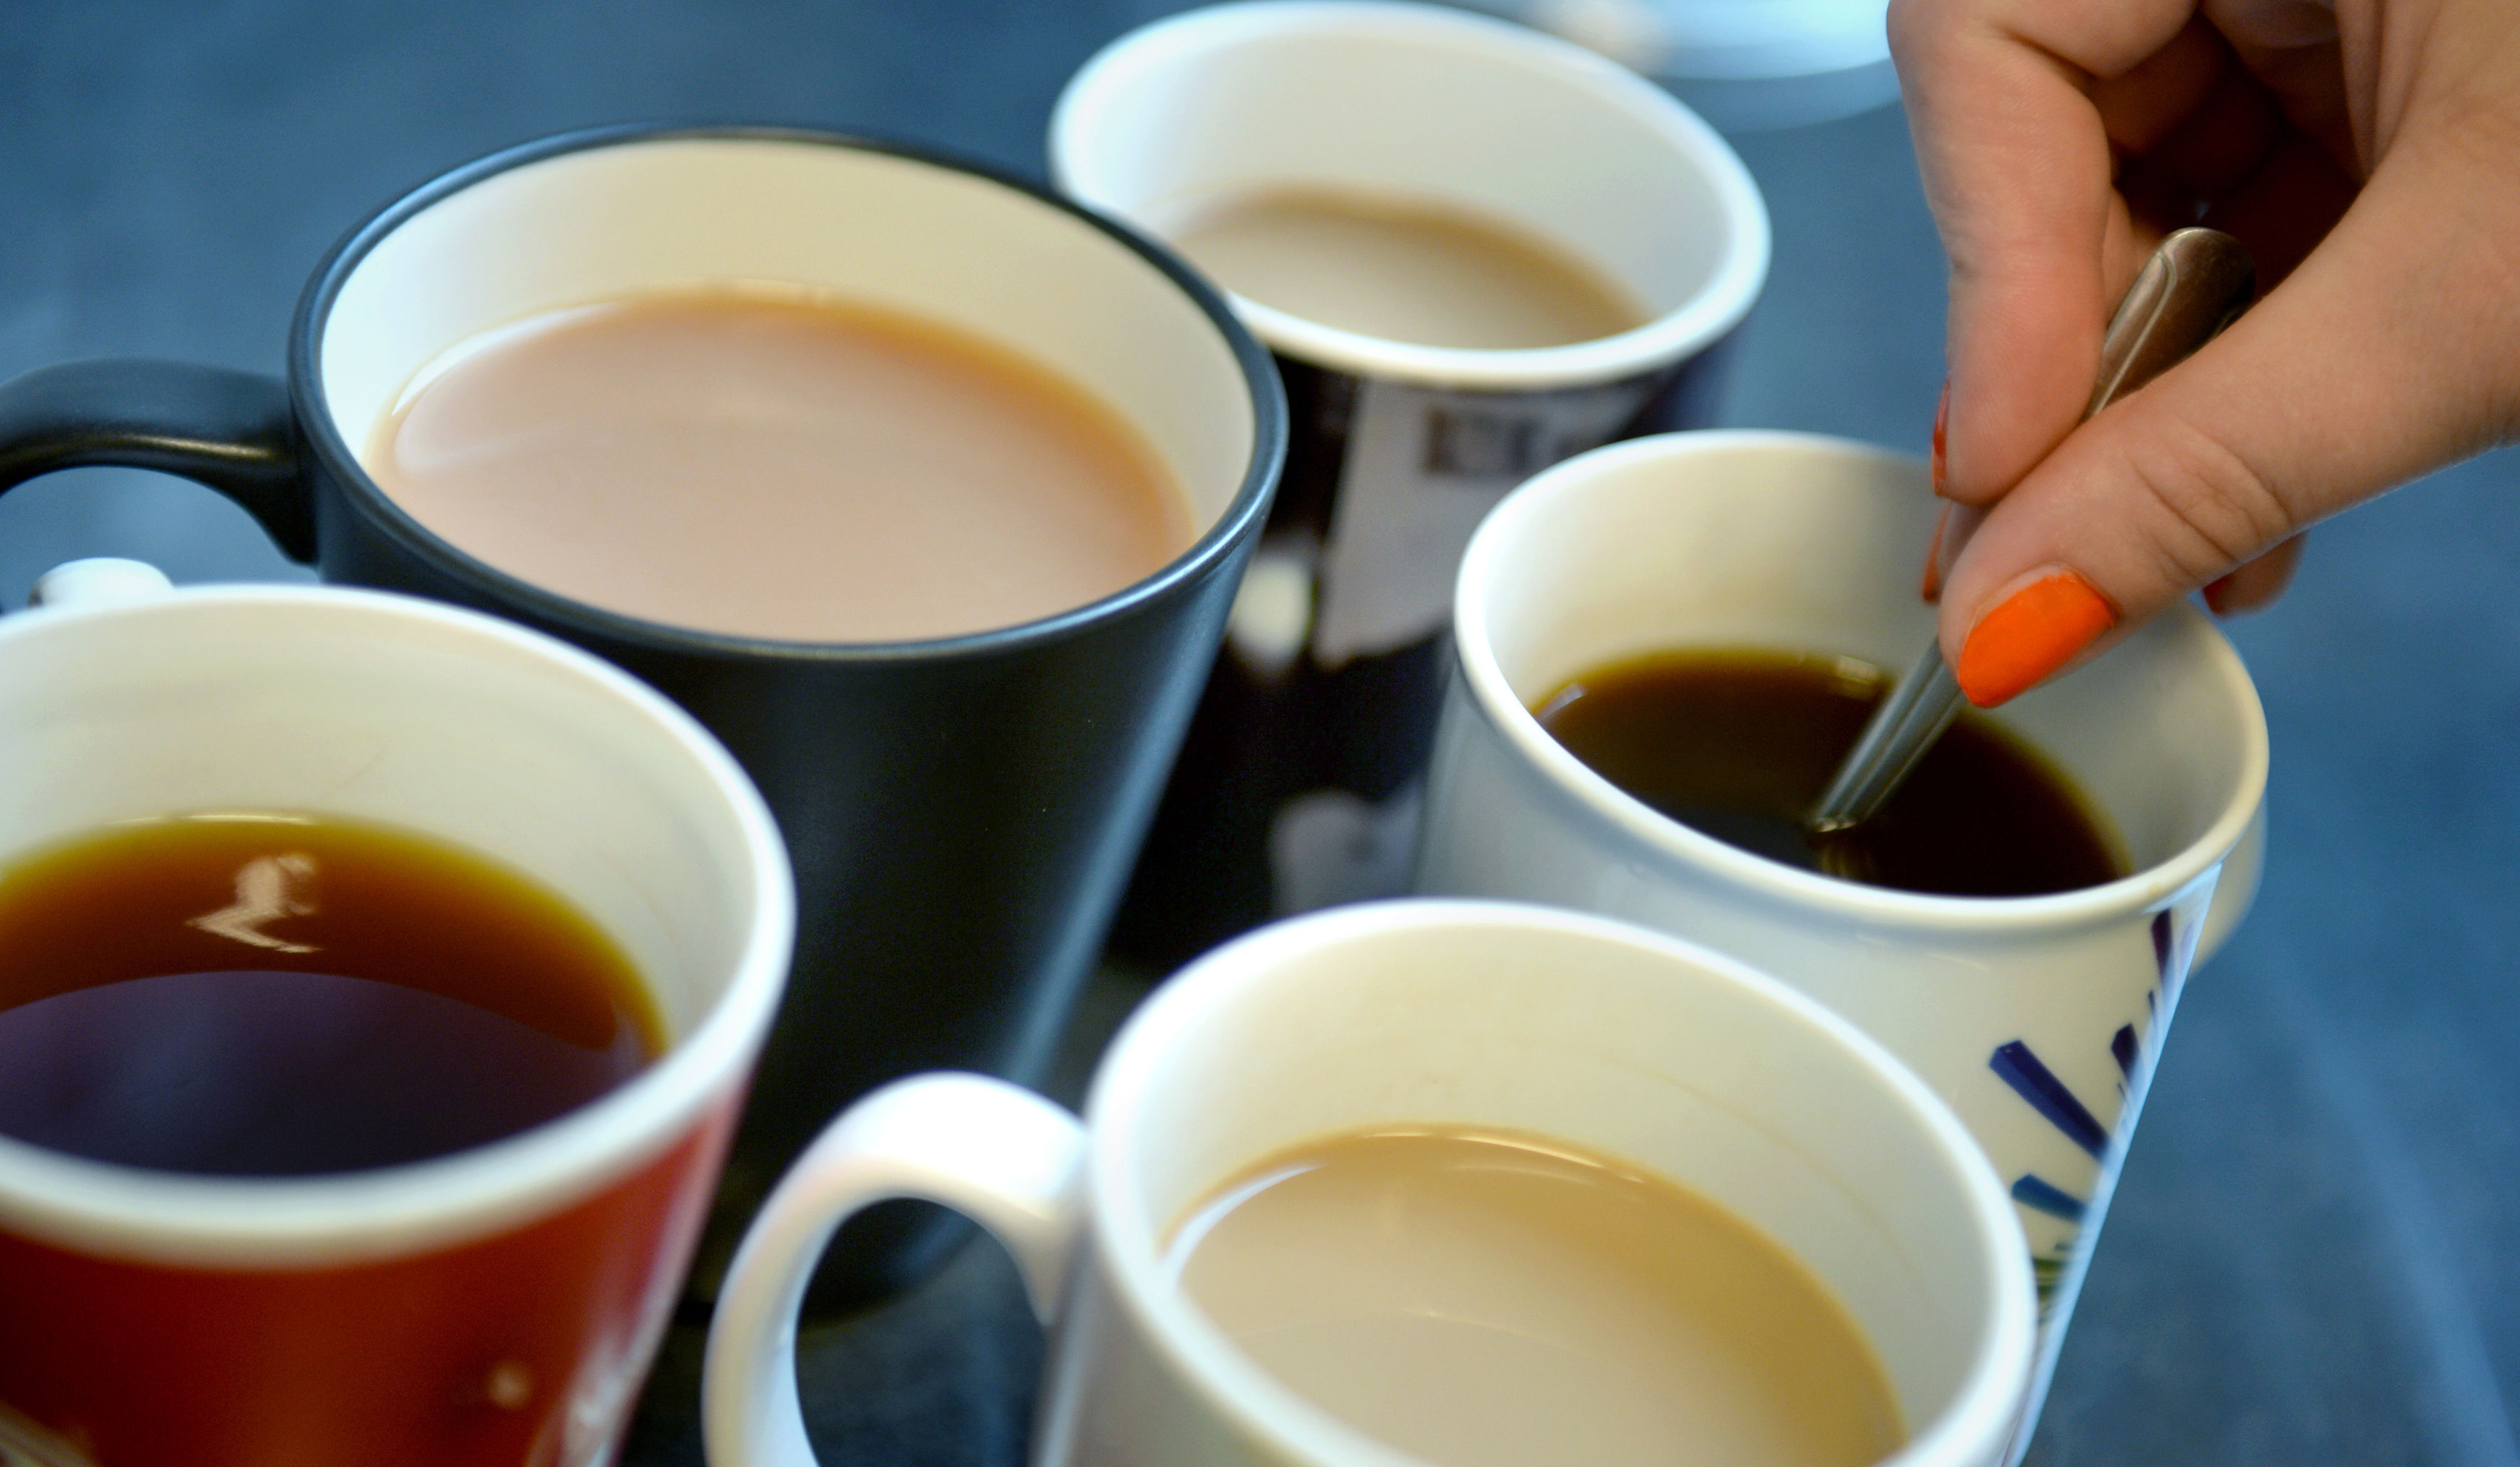 Perth and Kinross Council has splashed out on tea and coffee for meetings.